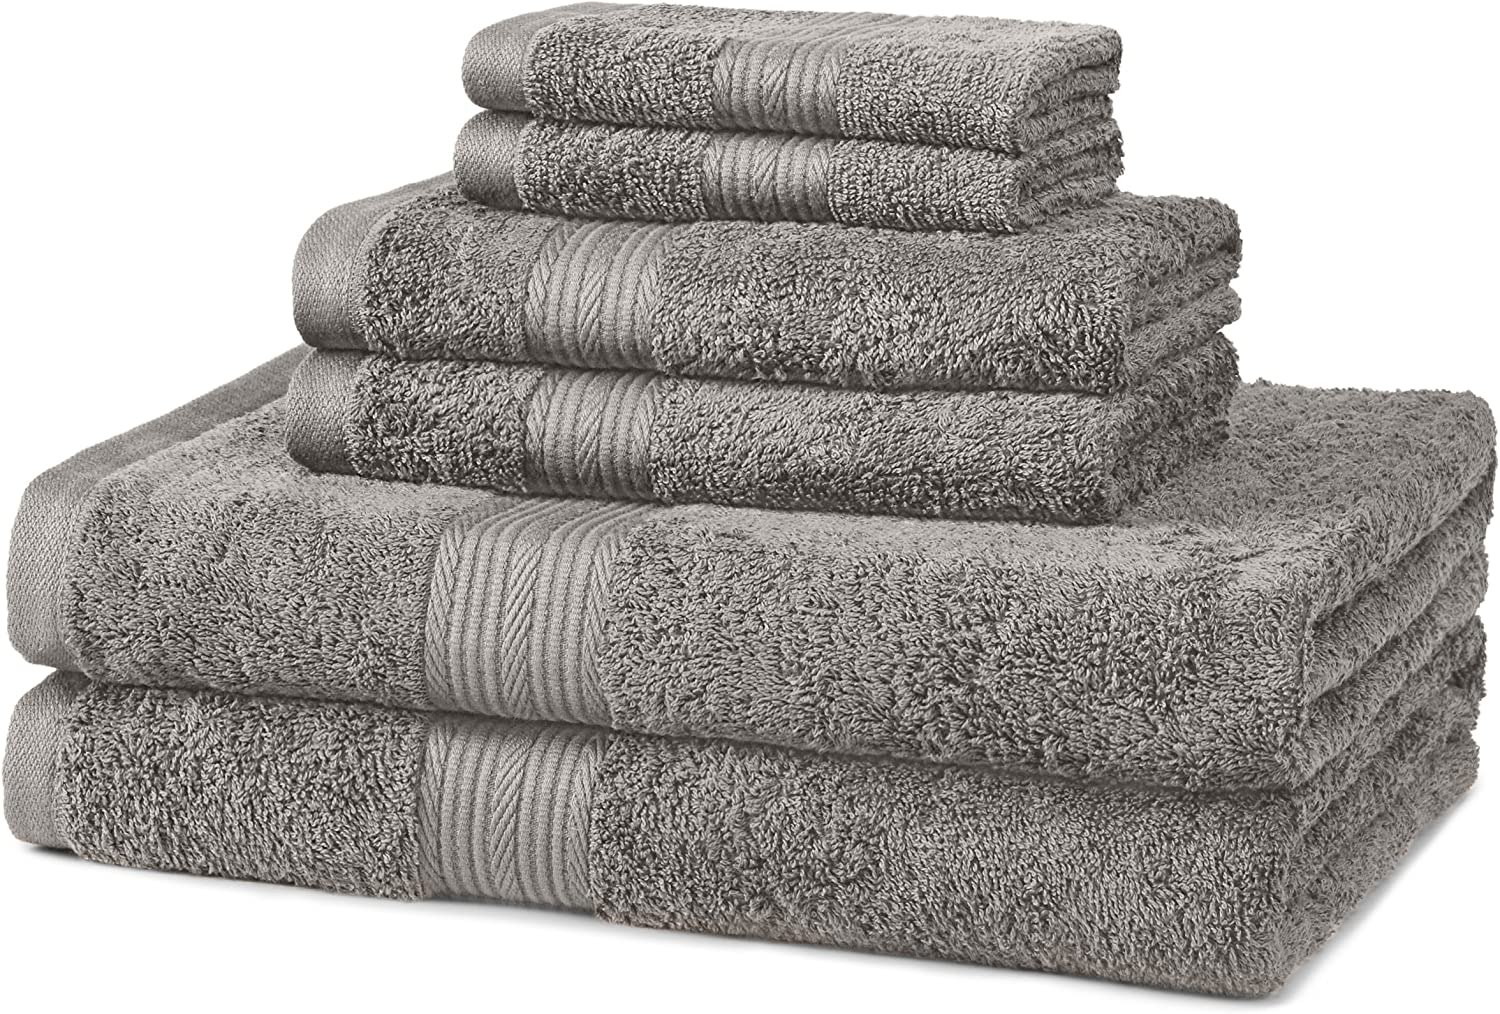 Basics 6-Piece Fade-Resistant Bath Towel Set - Grey: Home & Kitchen